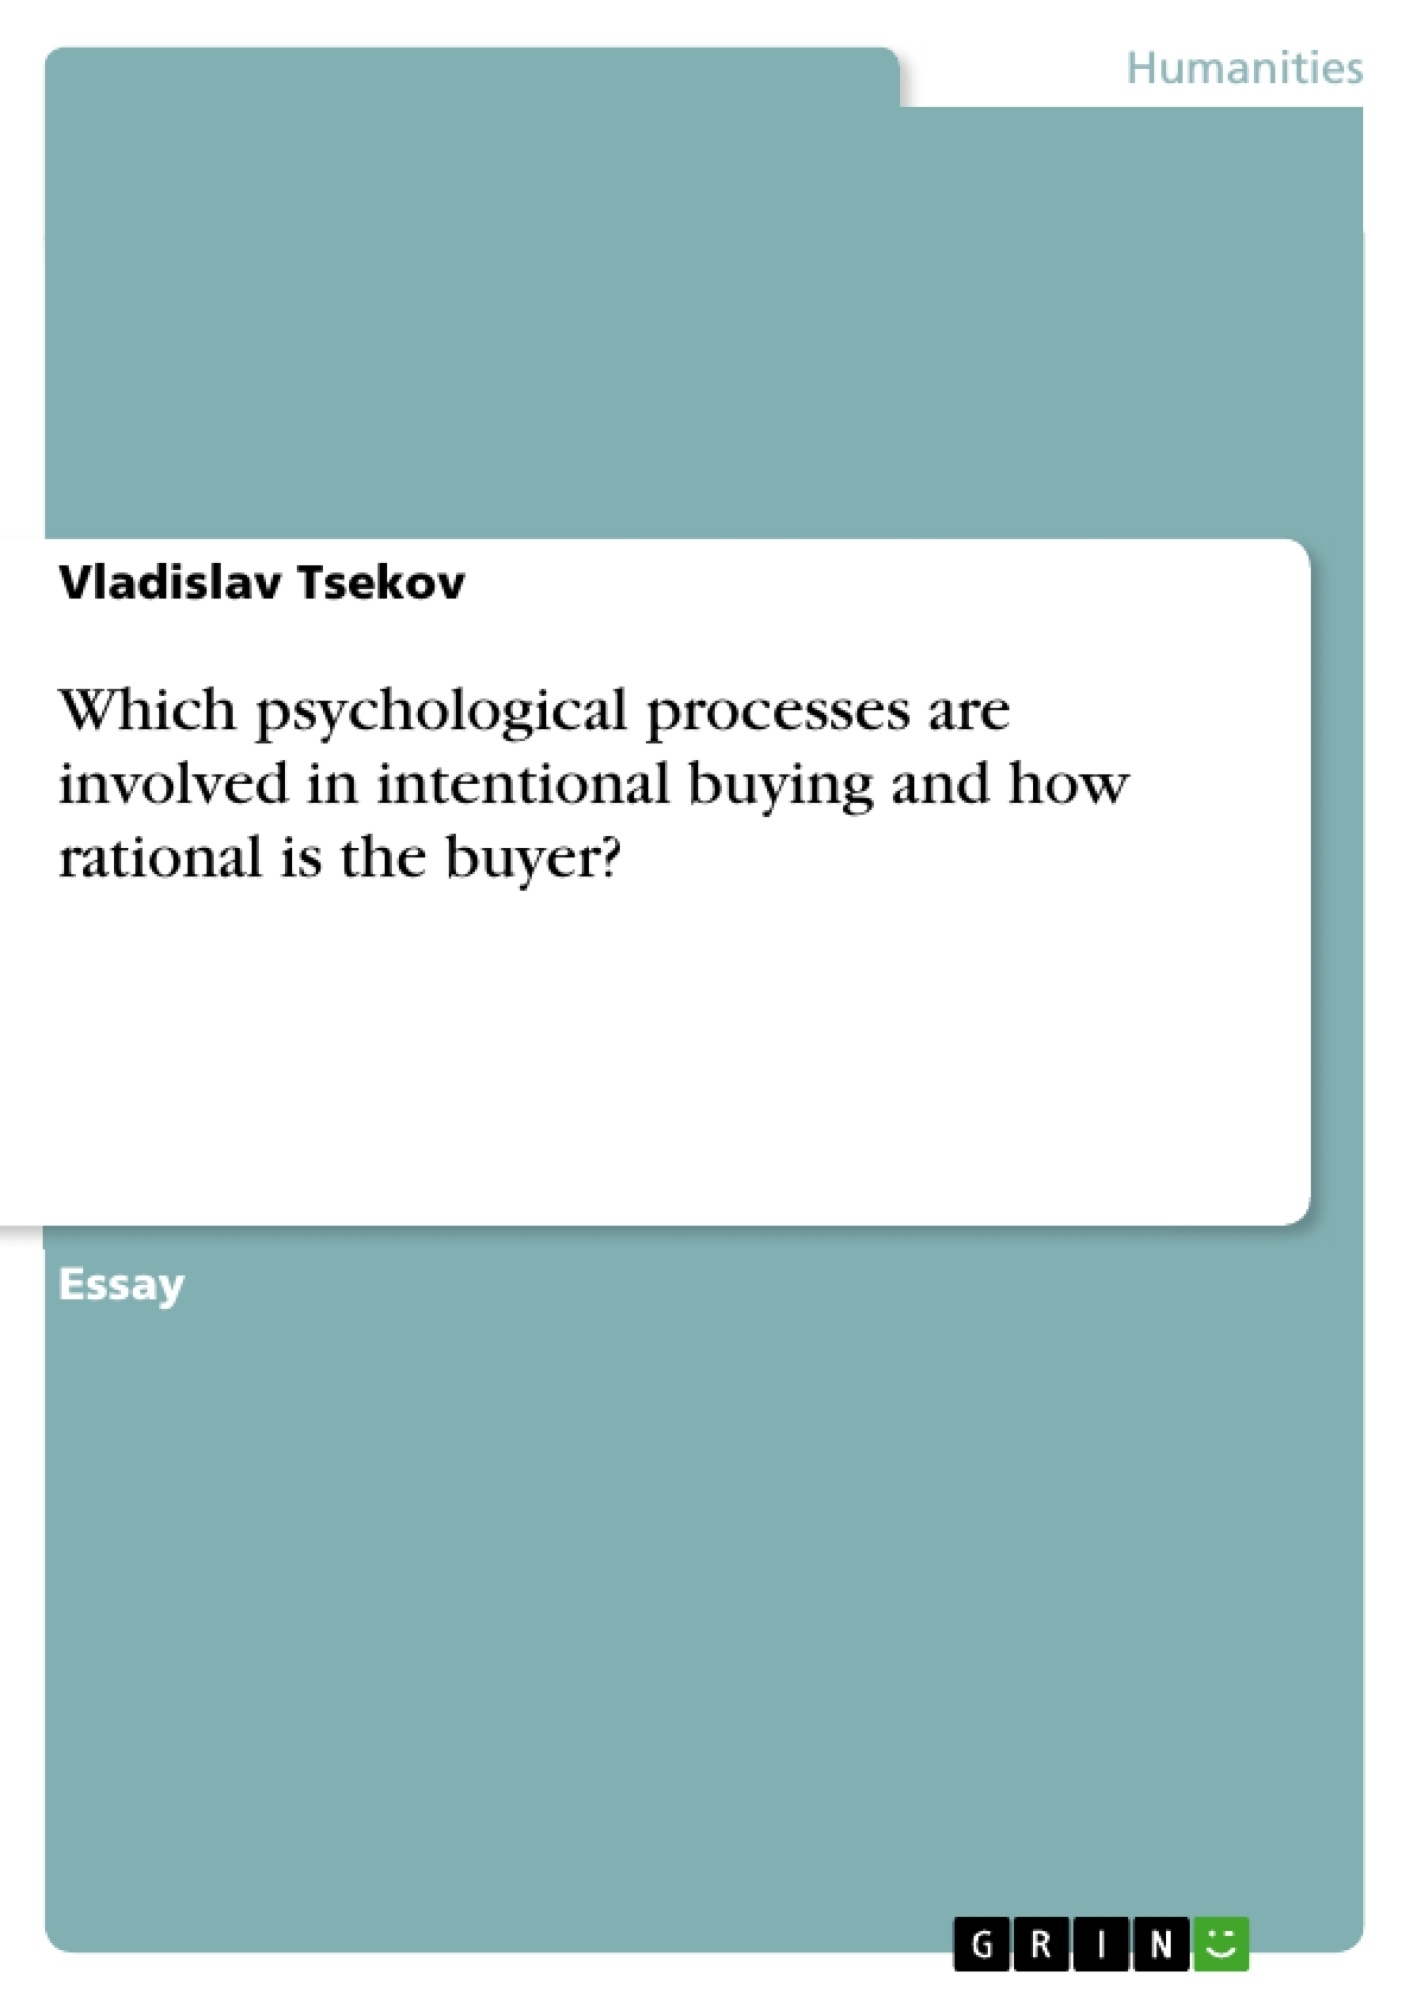 Title: Which psychological processes are involved in intentional buying and how rational is the buyer?